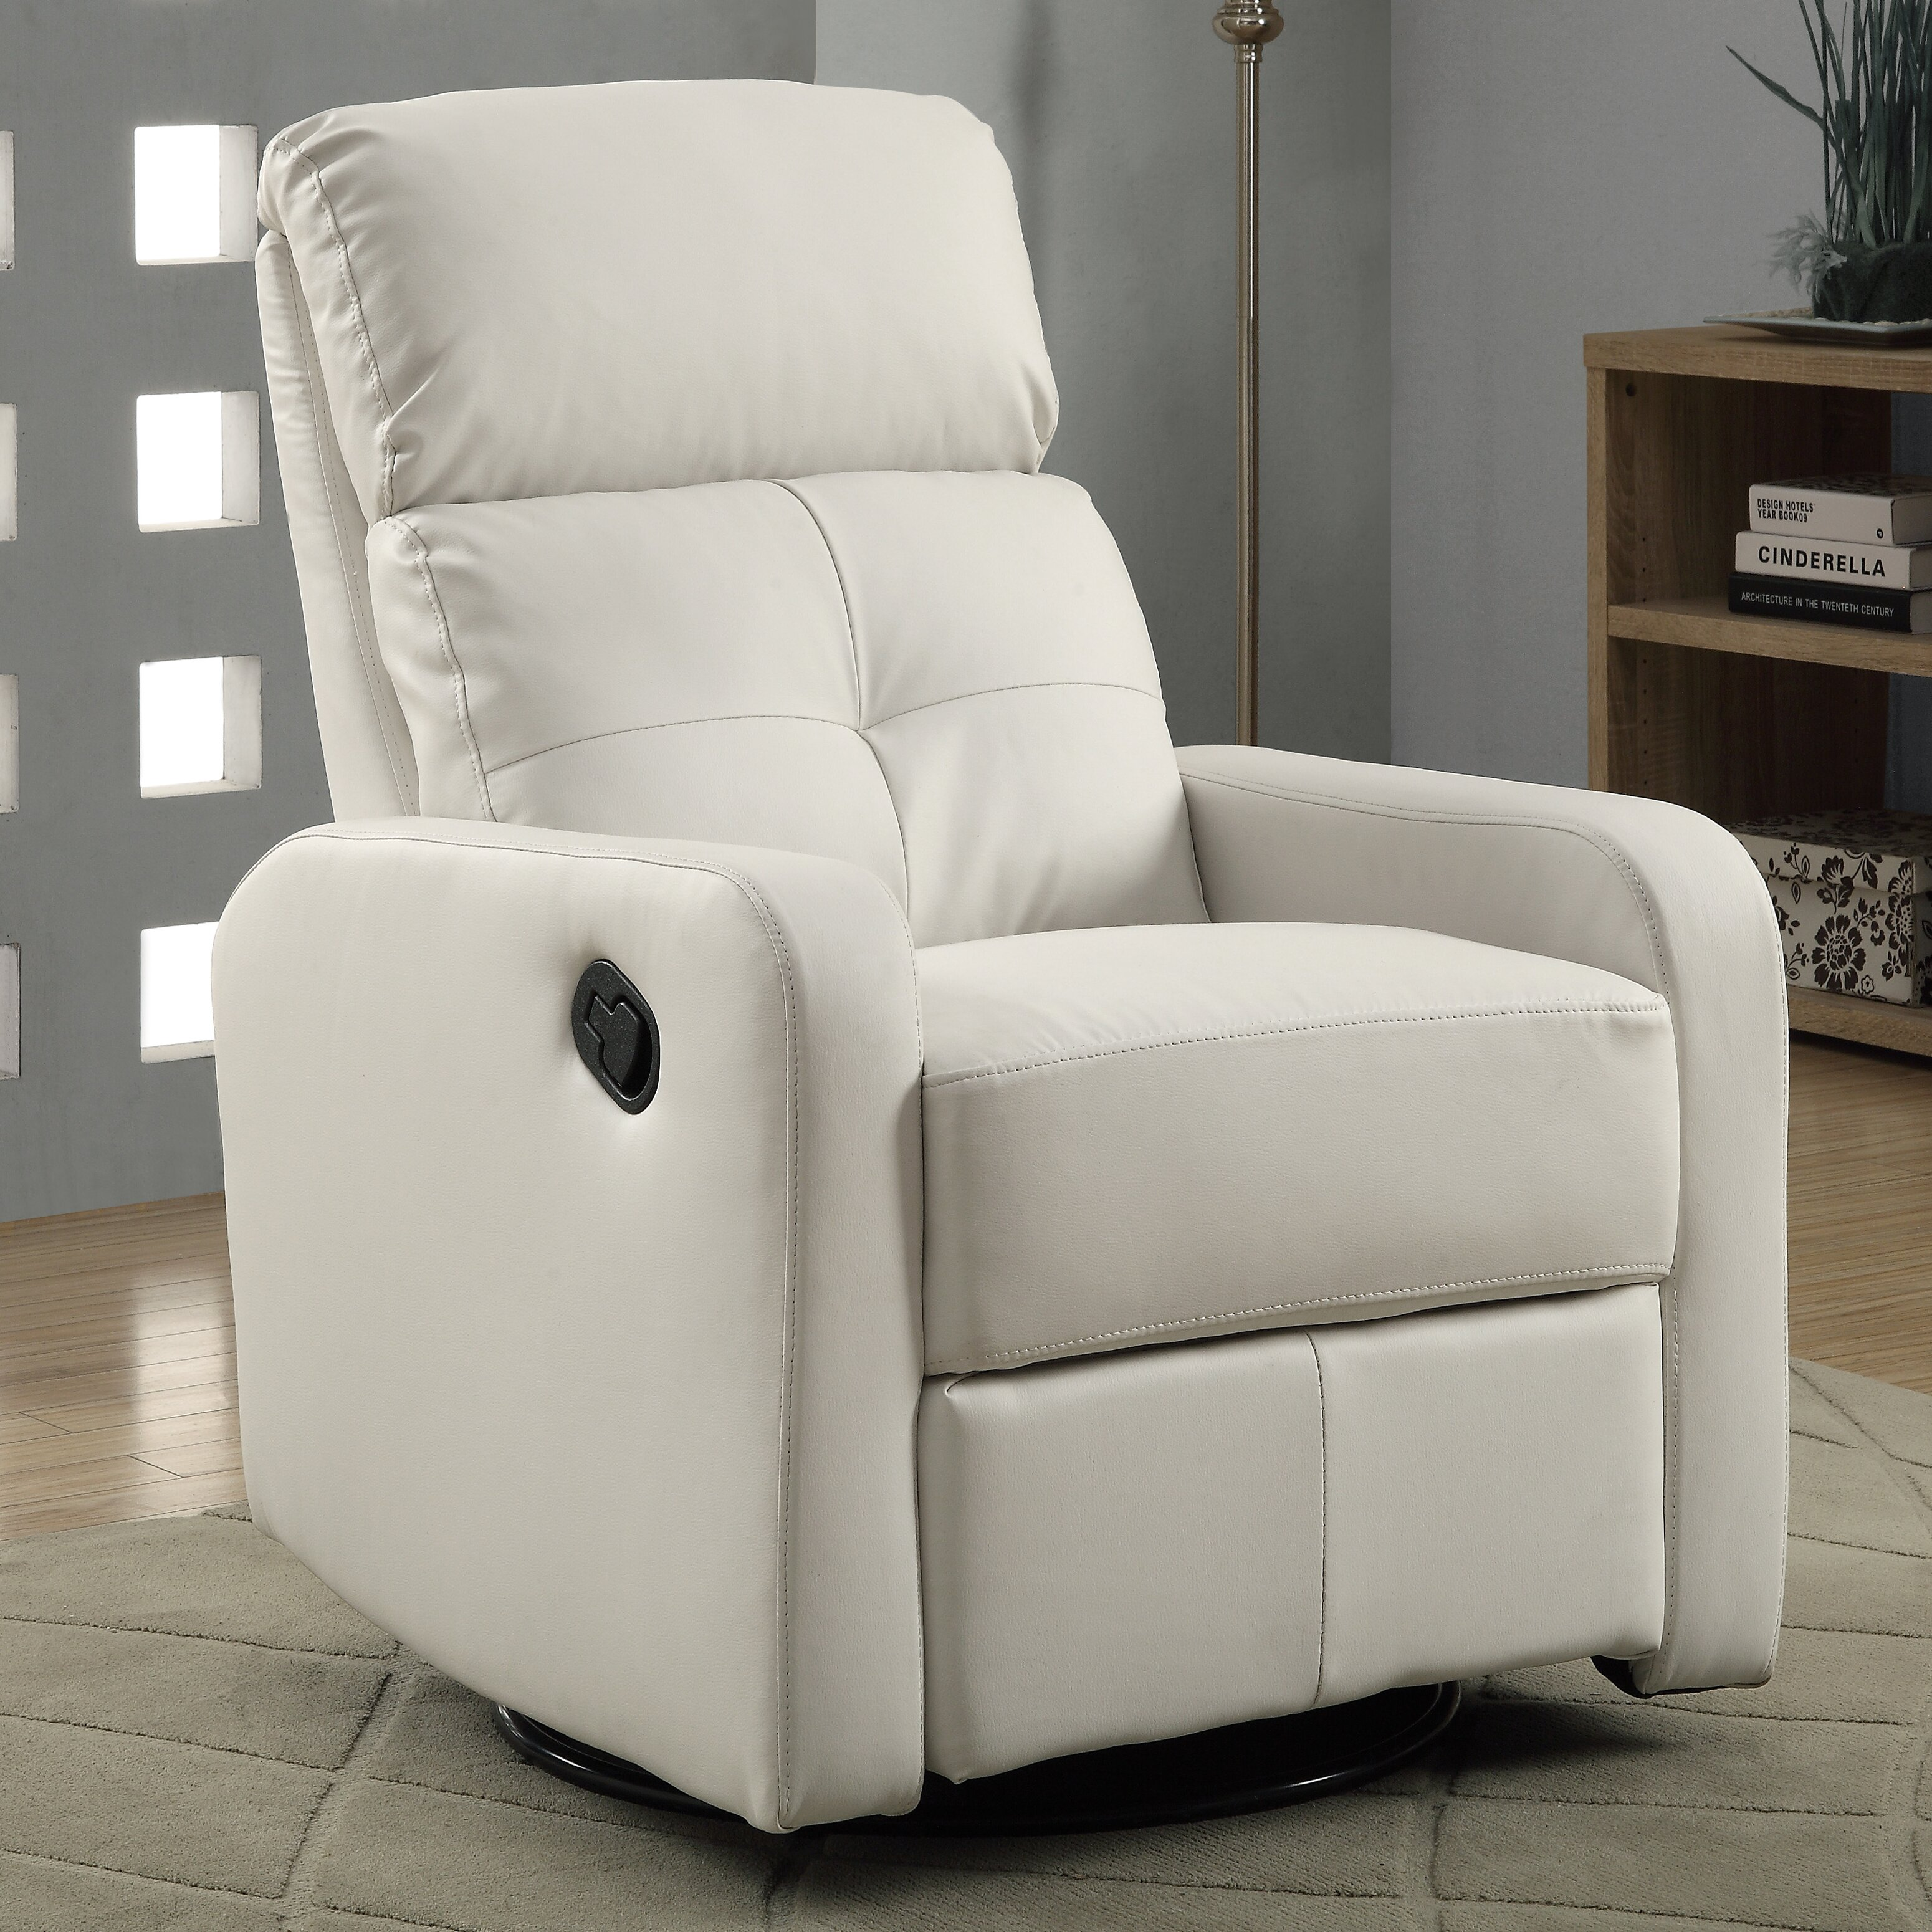 Swivel Rocker Glider Recliners Youll Love – Leather Swivel Glider Chair